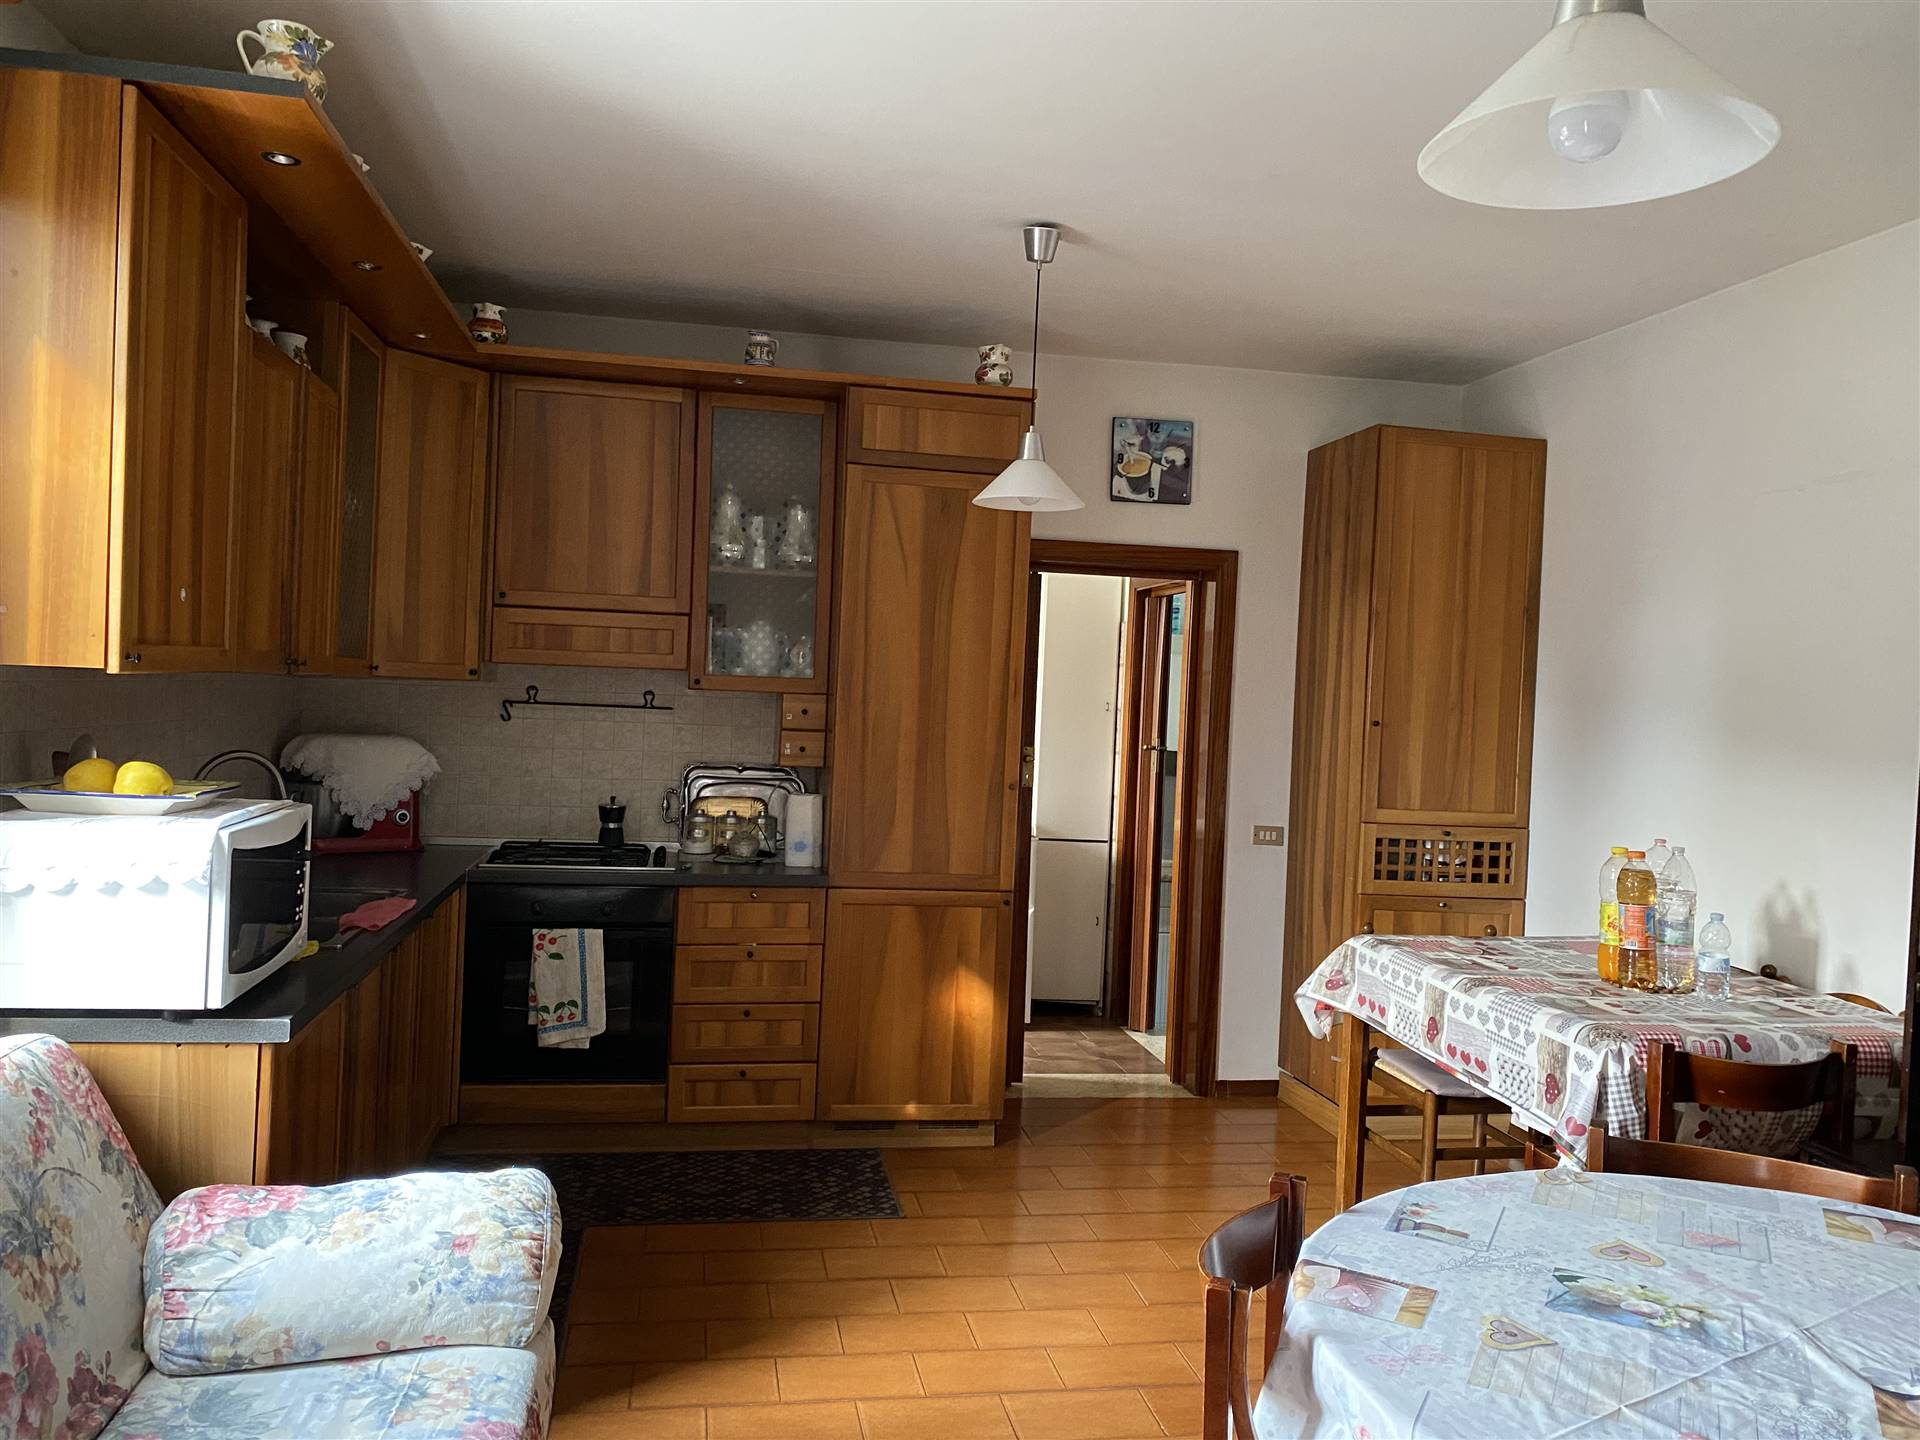 ZIANIGO, MIRANO, Duplex villa for sale of 110 Sq. mt., Good condition, Heating Individual heating system, placed at 1° on 1, composed by: 5 Rooms,